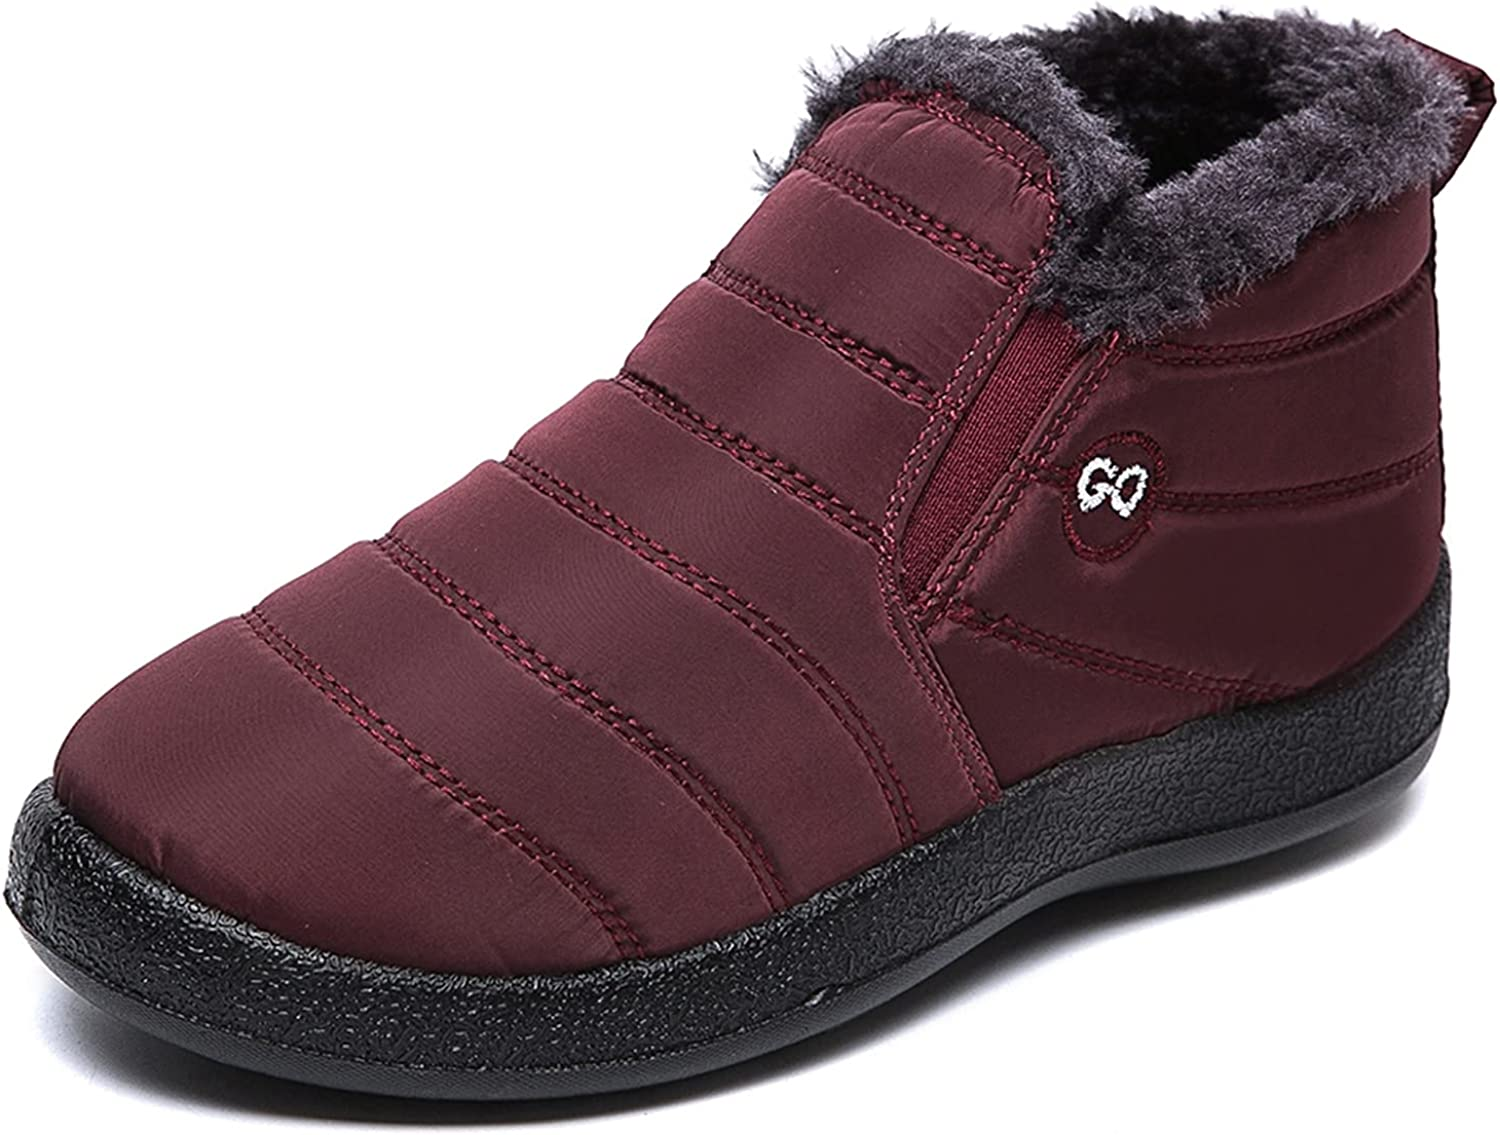 Warm Snow Boots, Women's Winter Ankle Bootie Anti-Slip Fur Lined Ankle Short Boots Waterproof Slip On Outdoor Shoes Black Coffee Red Blue, Size 5-10